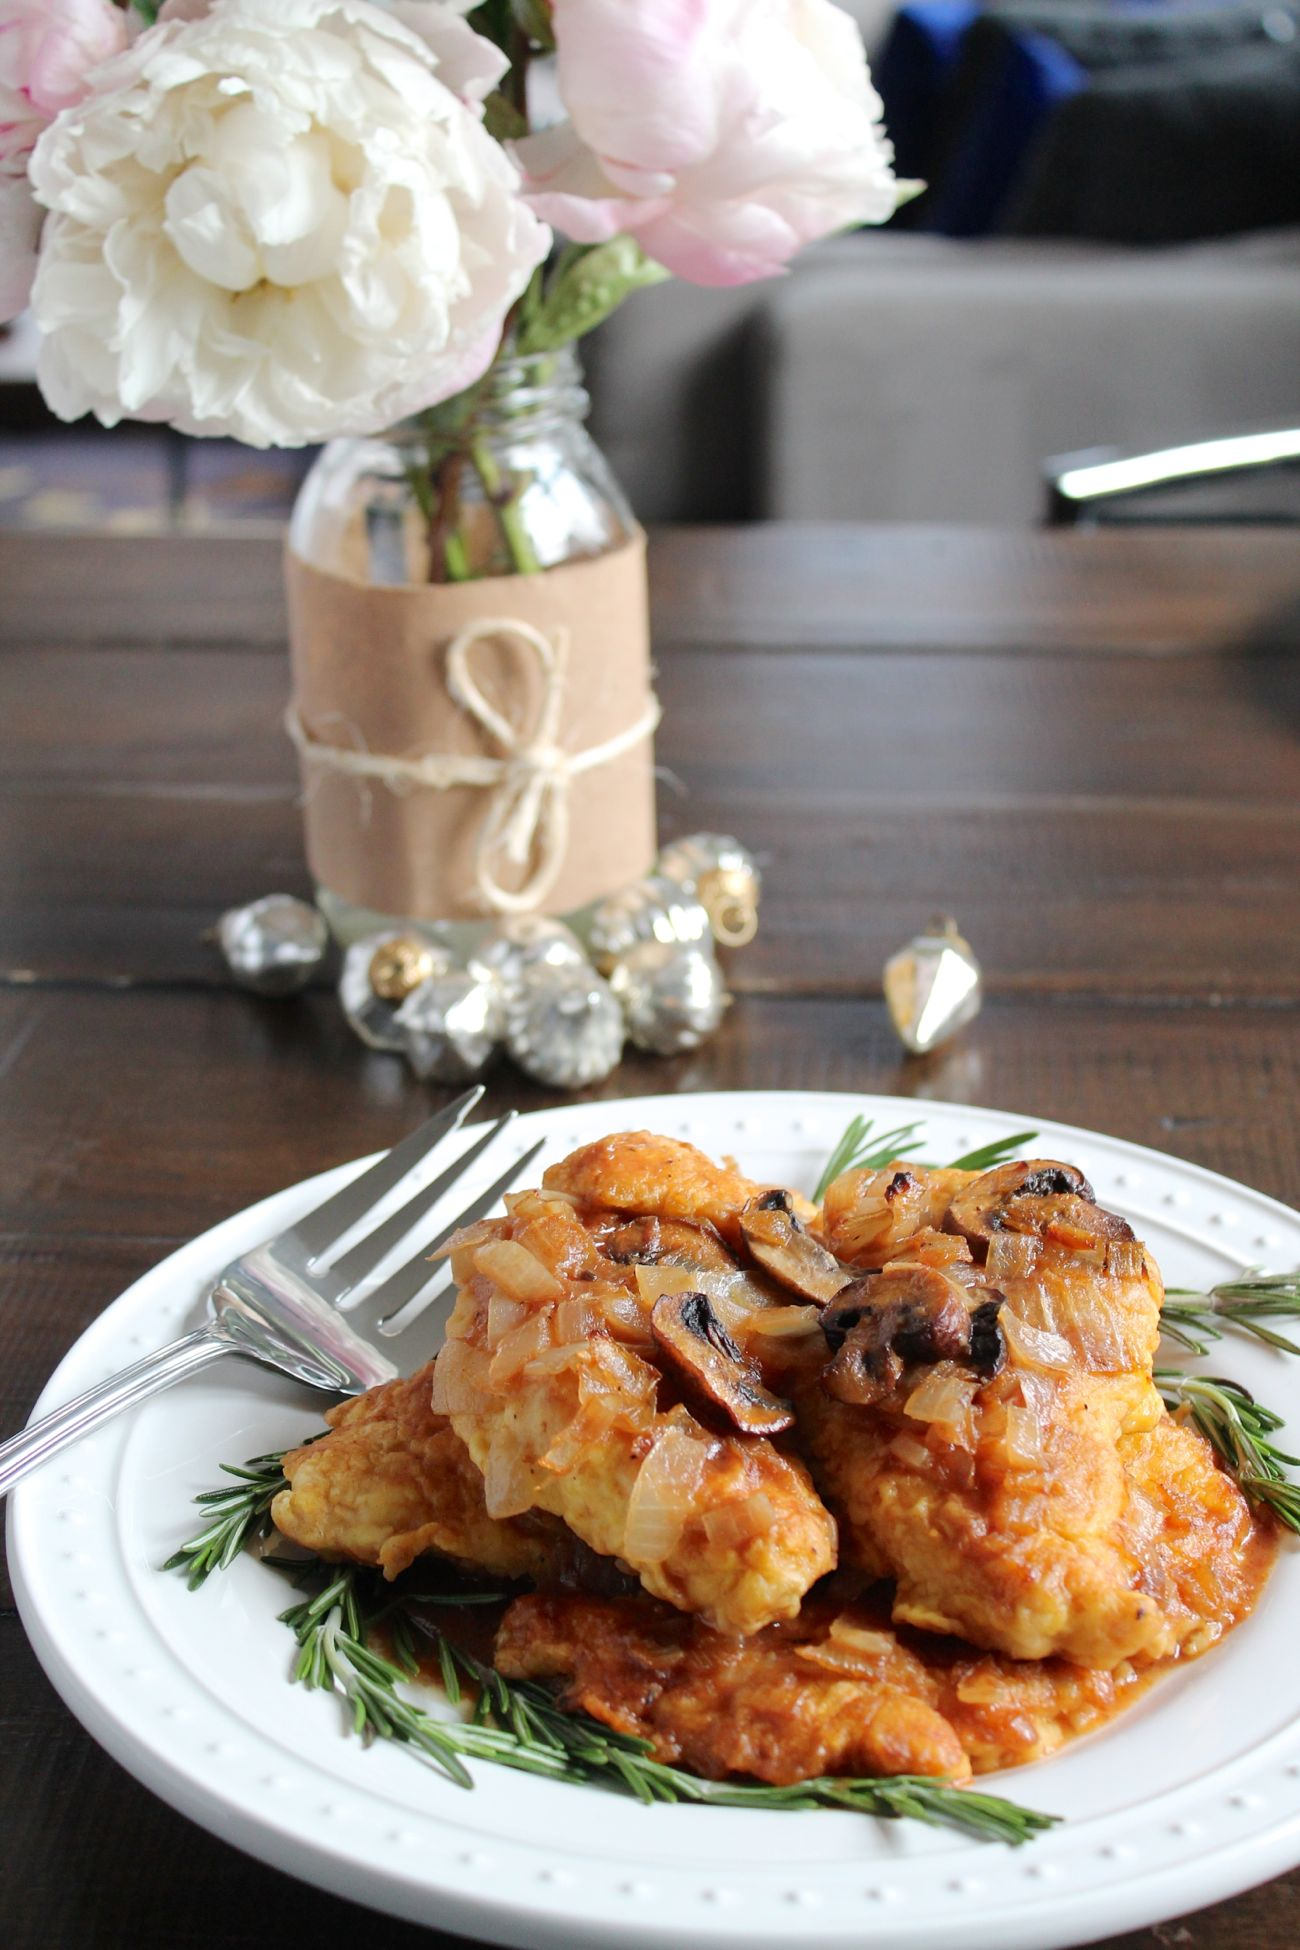 My mother's recipe for Classic Chicken Marsala has been a staple at special occasions and family gatherings for years! The best thing is that is tastes even better when it is made a day early, it is the perfect make-ahead holiday meal!